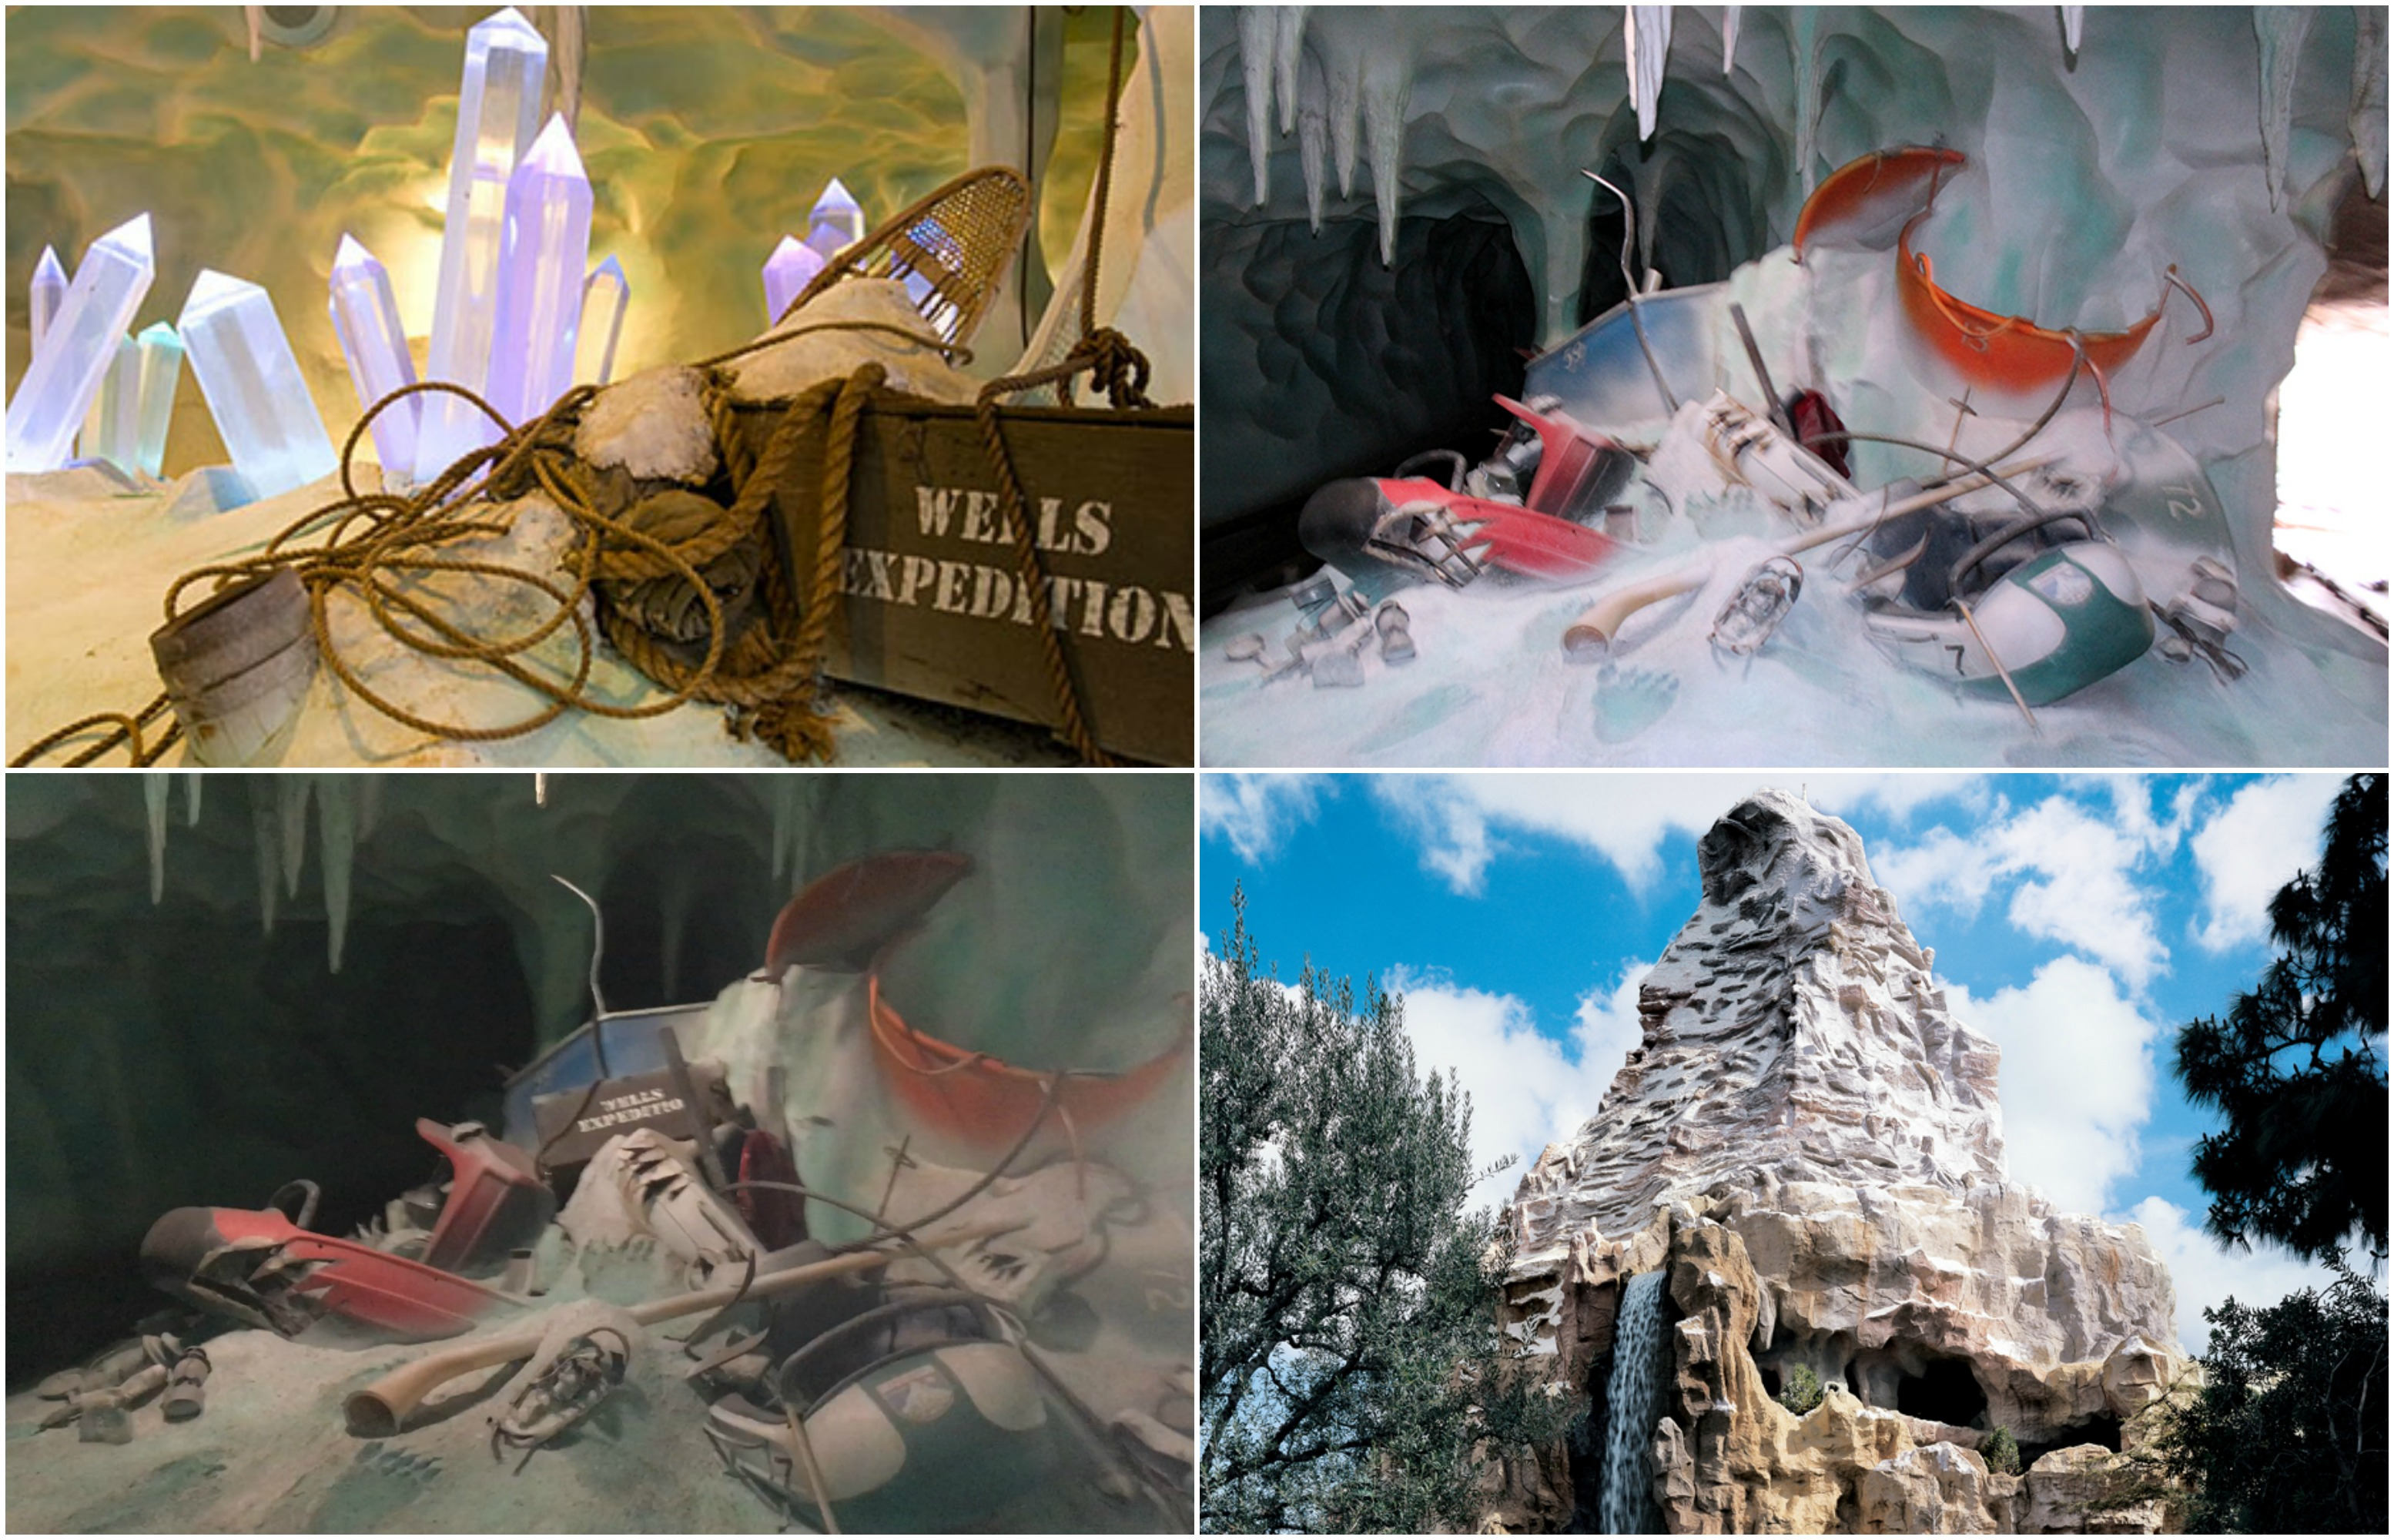 Wells Expedition Tribute Returns to Disneyland's Matterhorn